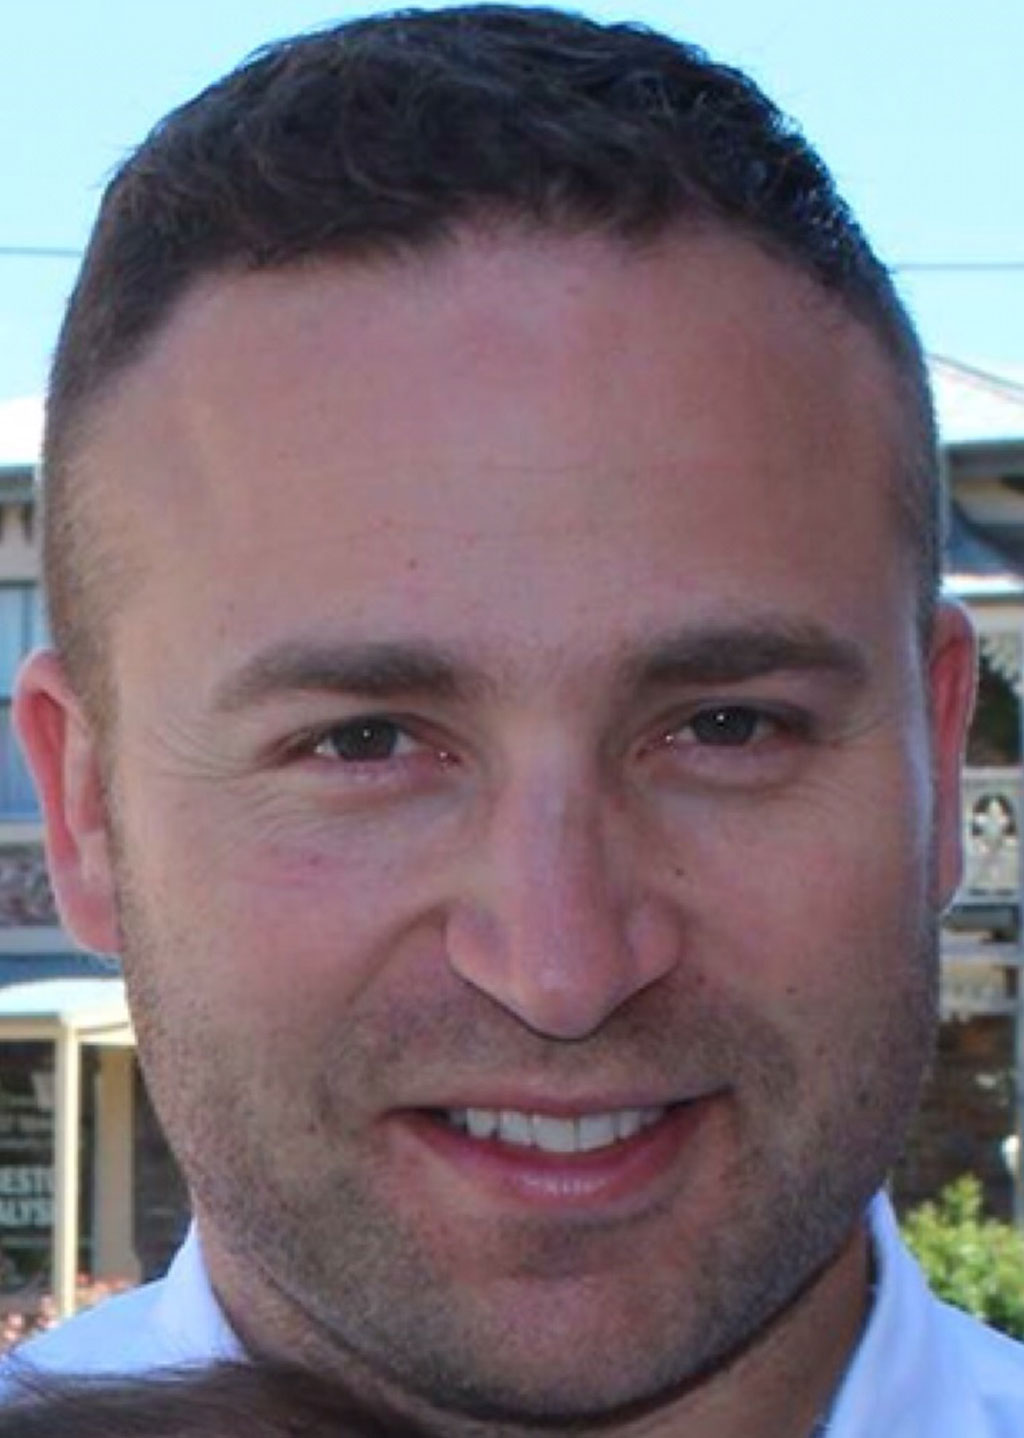 Police searching for missing Adelaide dad who hasn't been seen since Mother's Day